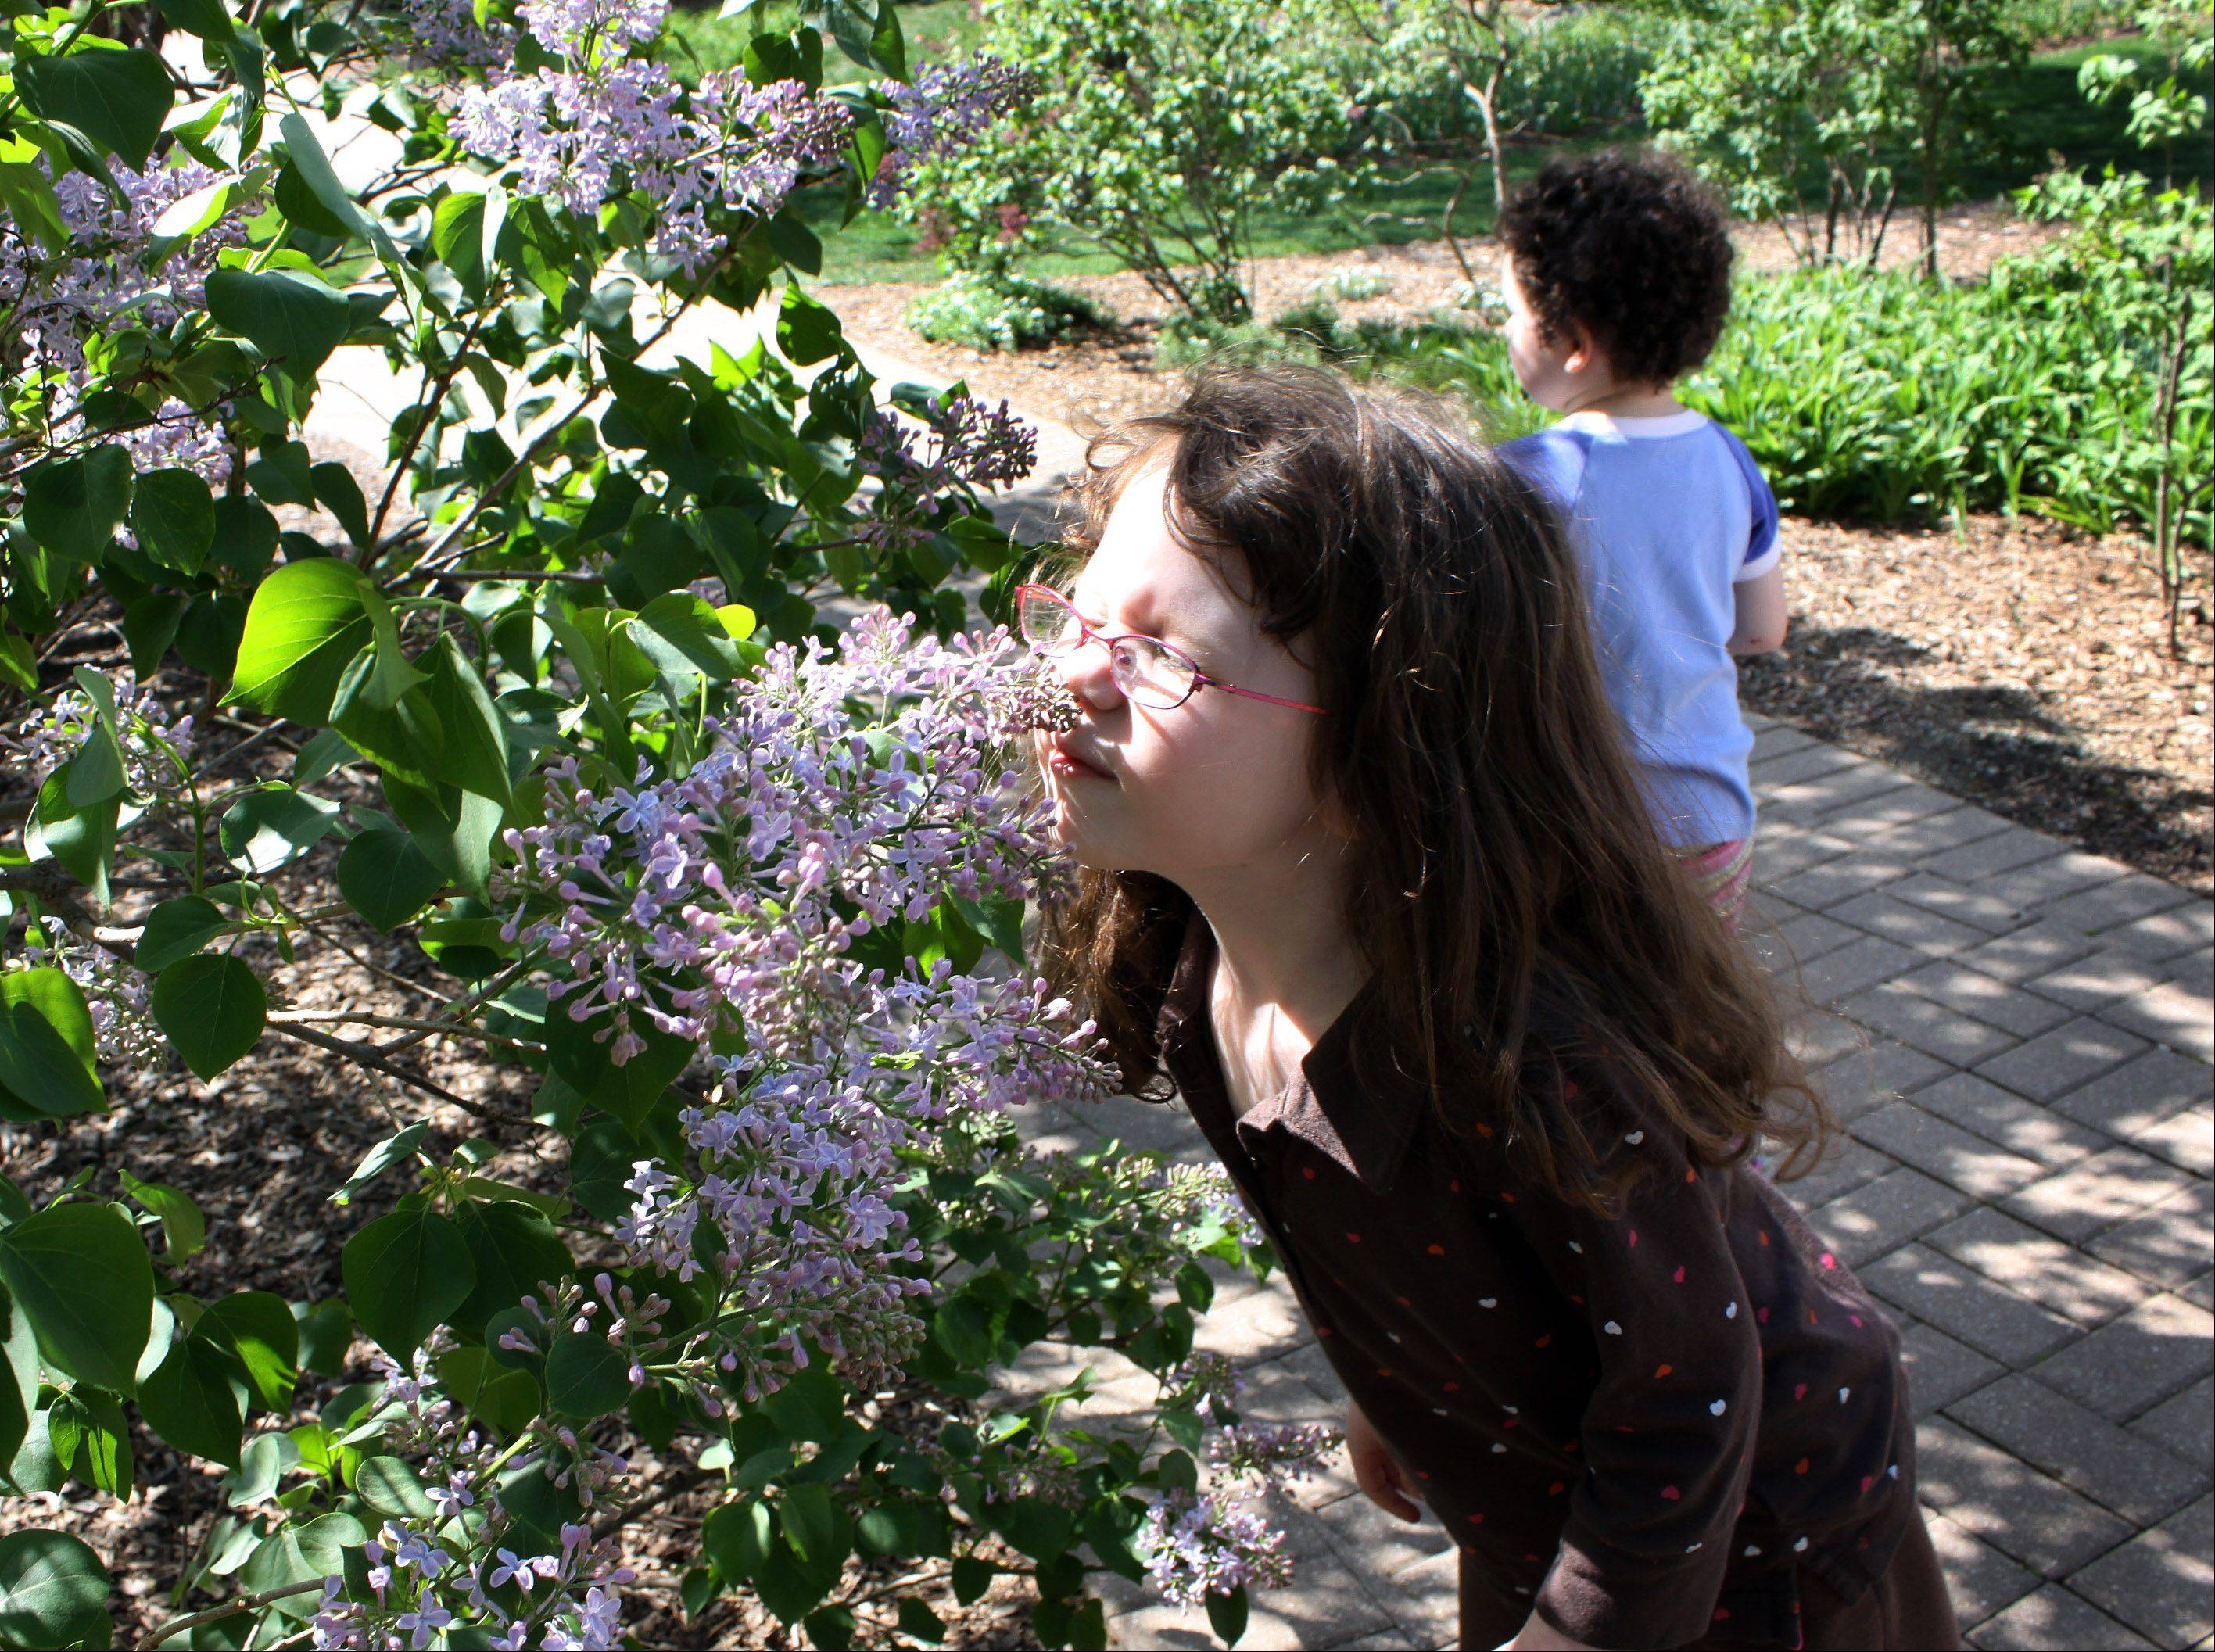 Catch a whiff of some sweetly scented lilacs during Lilac Time in Lombard, an annual spring festival running May 4-19 at Lilacia Park, 150 S. Park Ave.